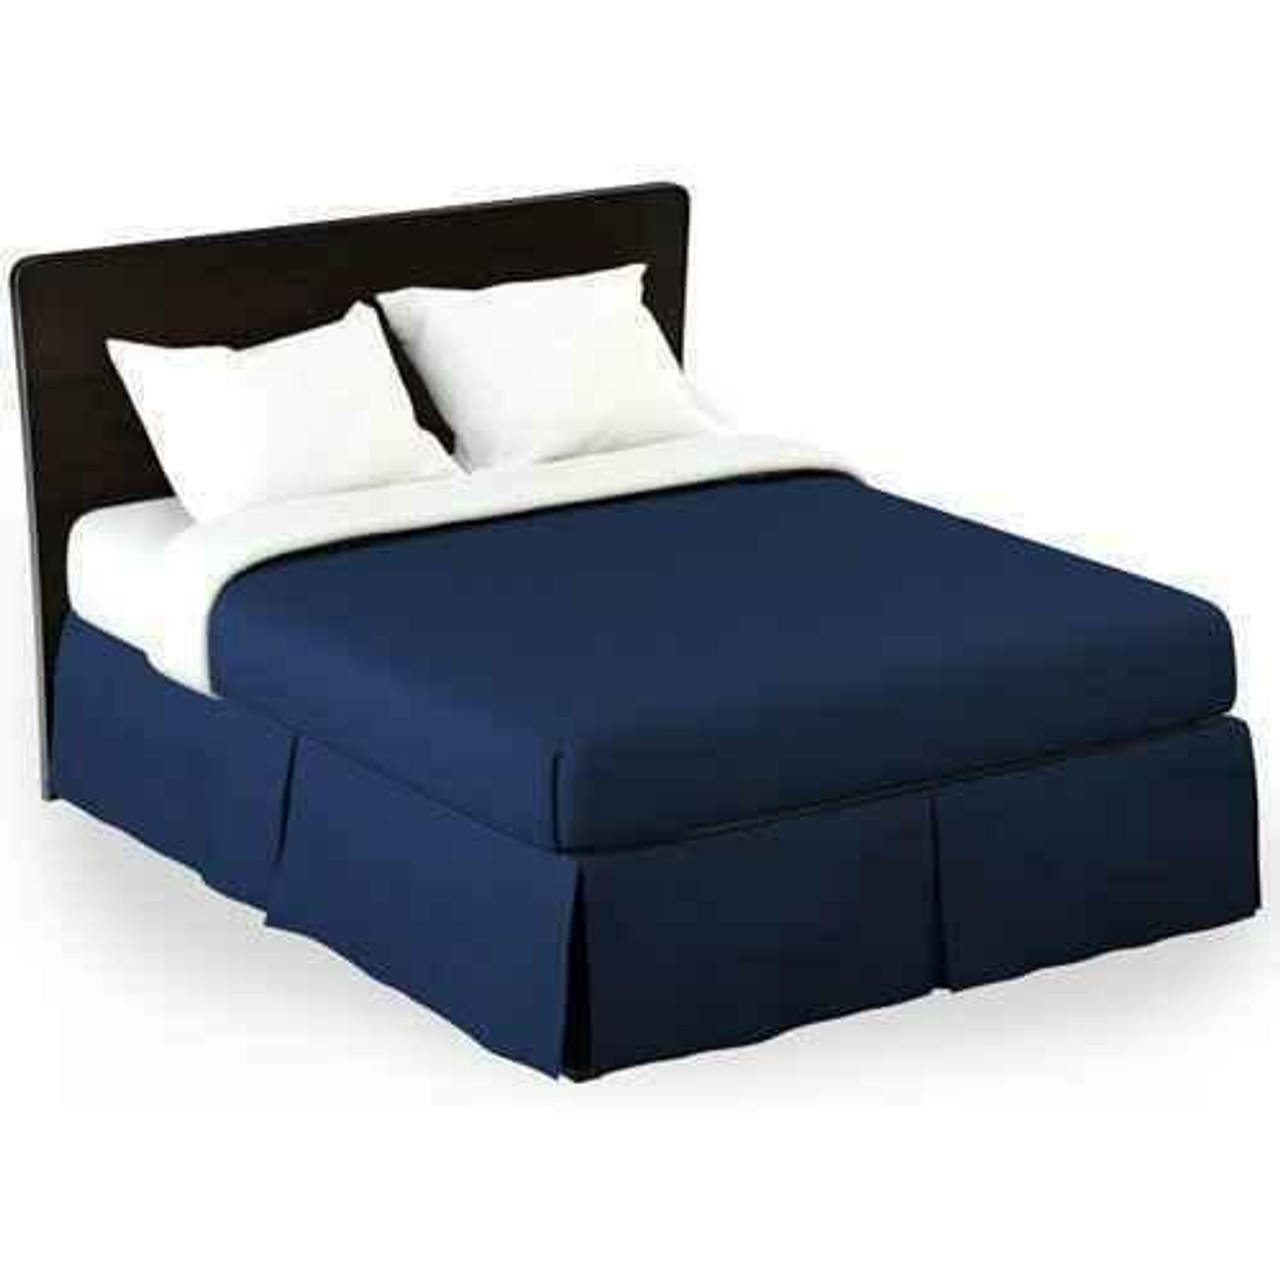 WestPoint/Martex Westpoint or Martex Rx or Bed Skirt or Solid Navy or Pack Of 12